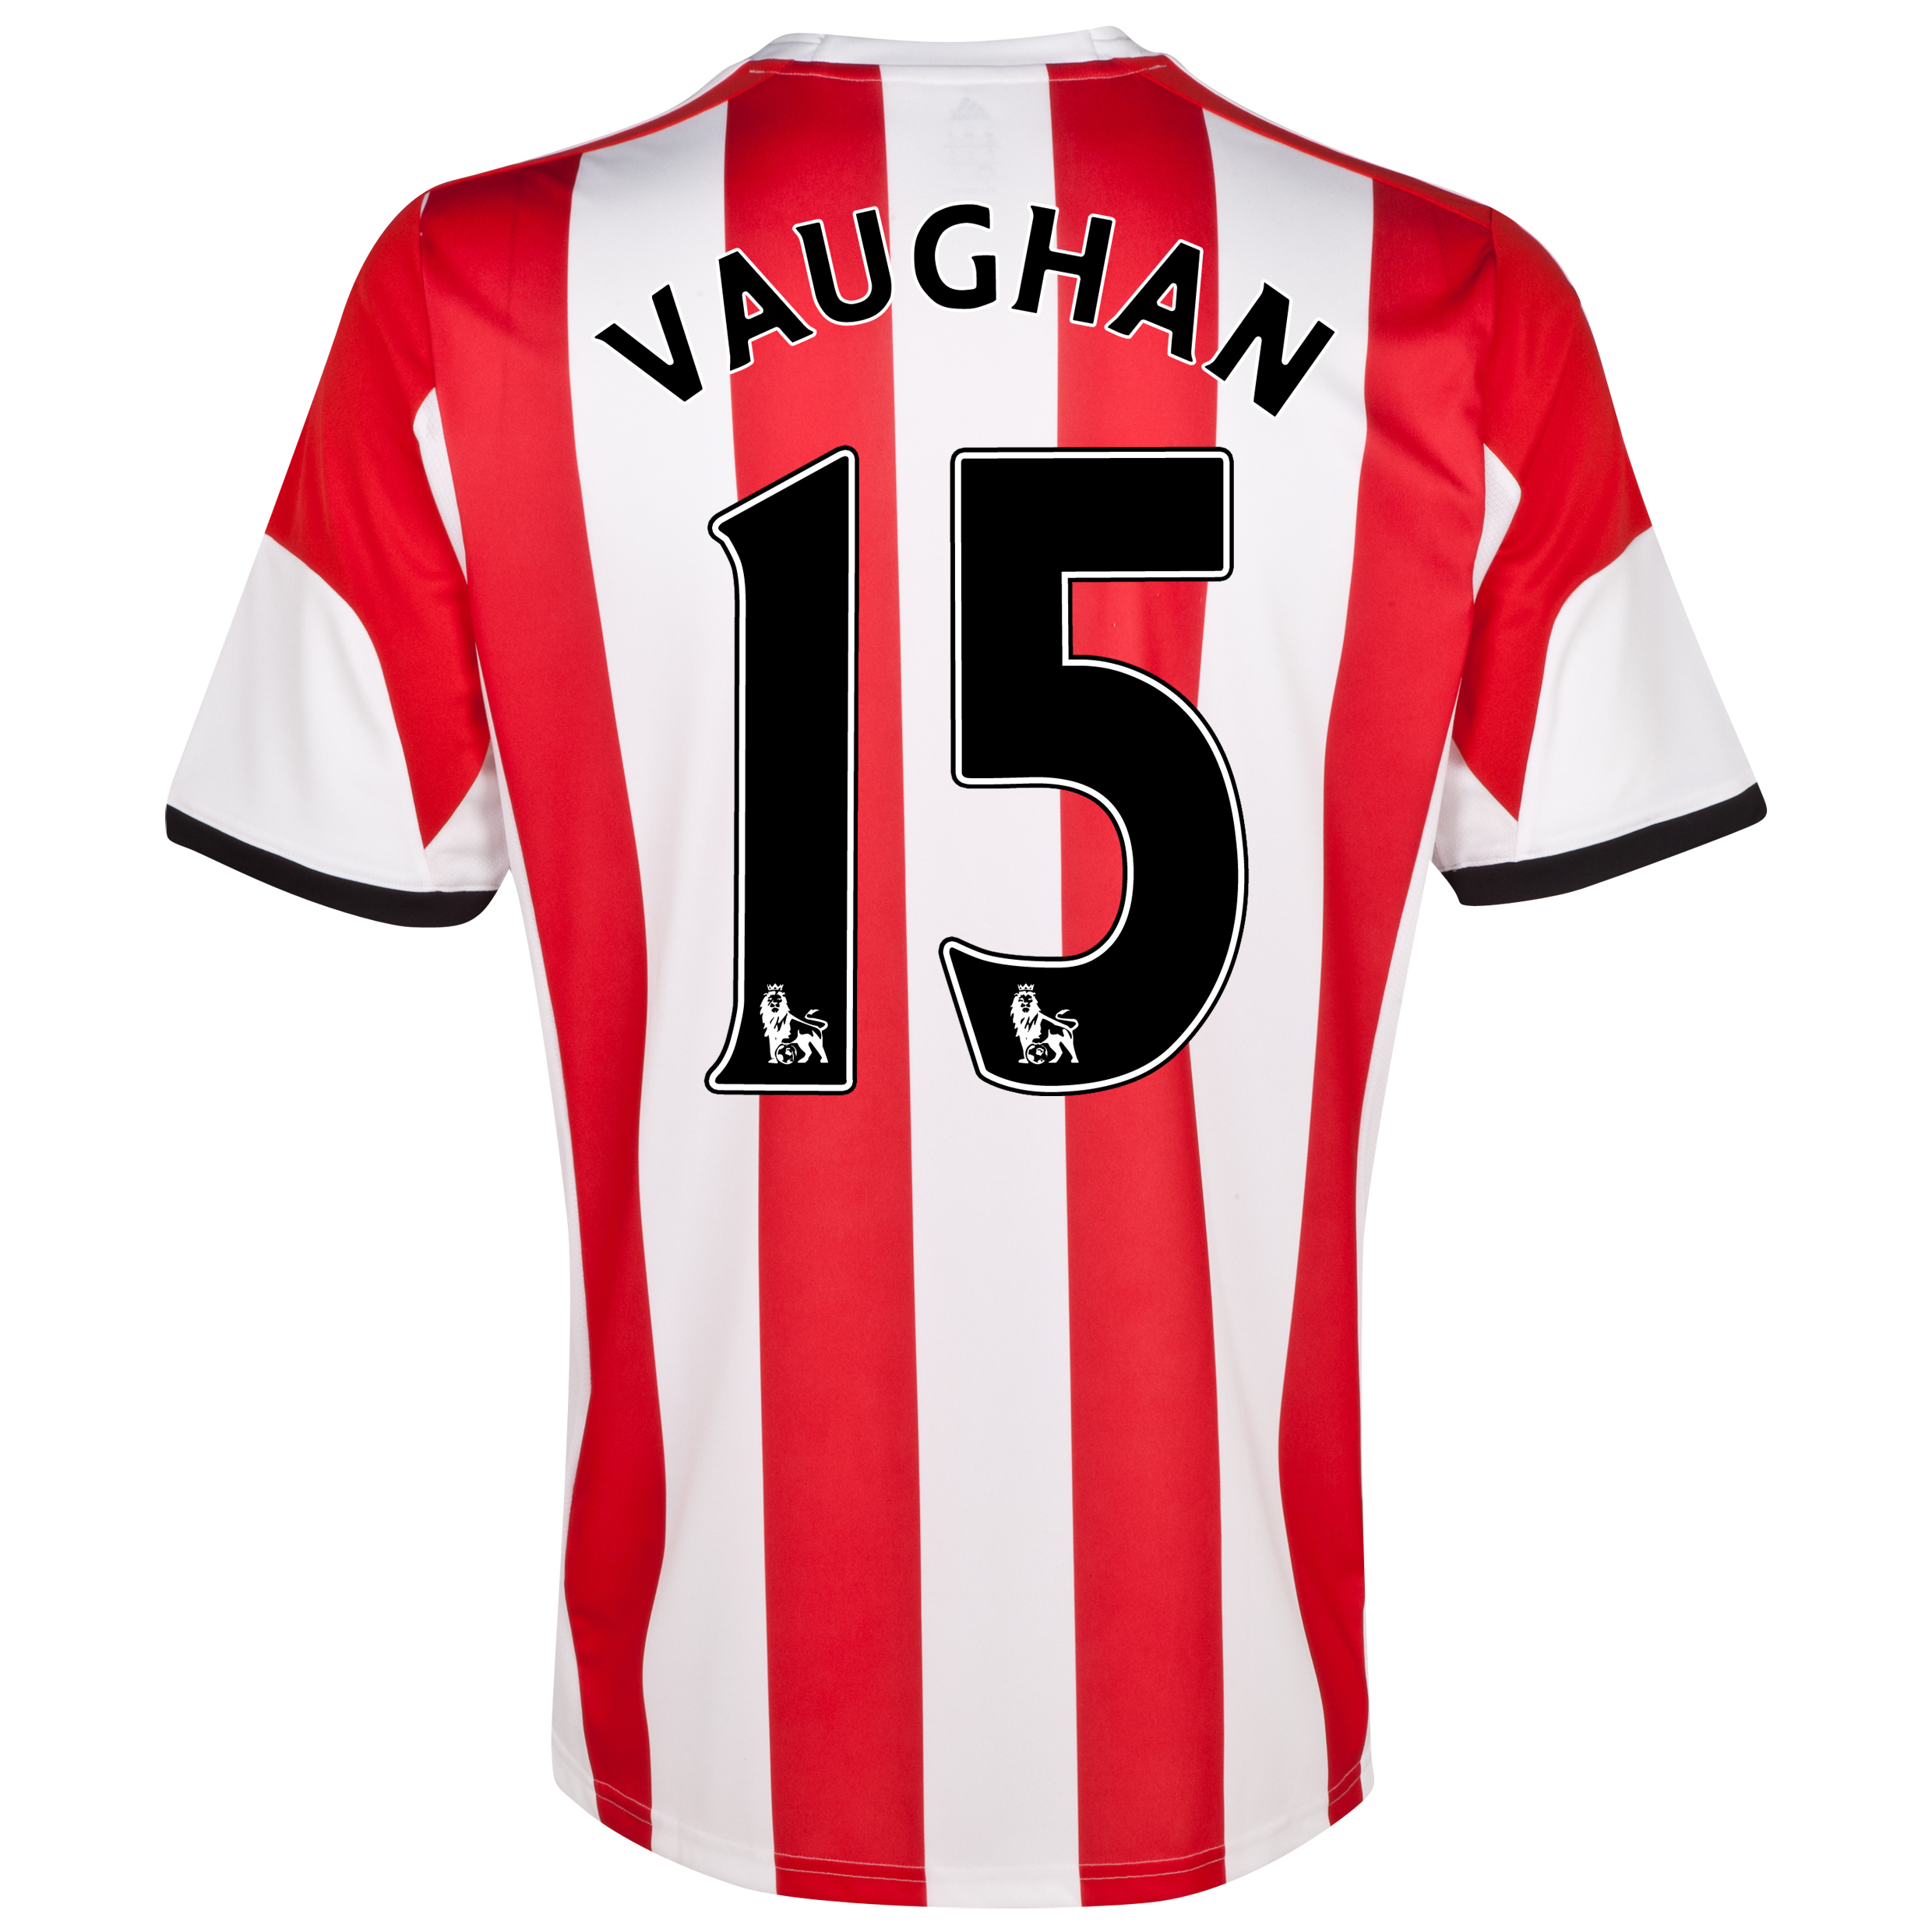 Sunderland Home Shirt 2013/14 - Junior with Vaughan 15 printing